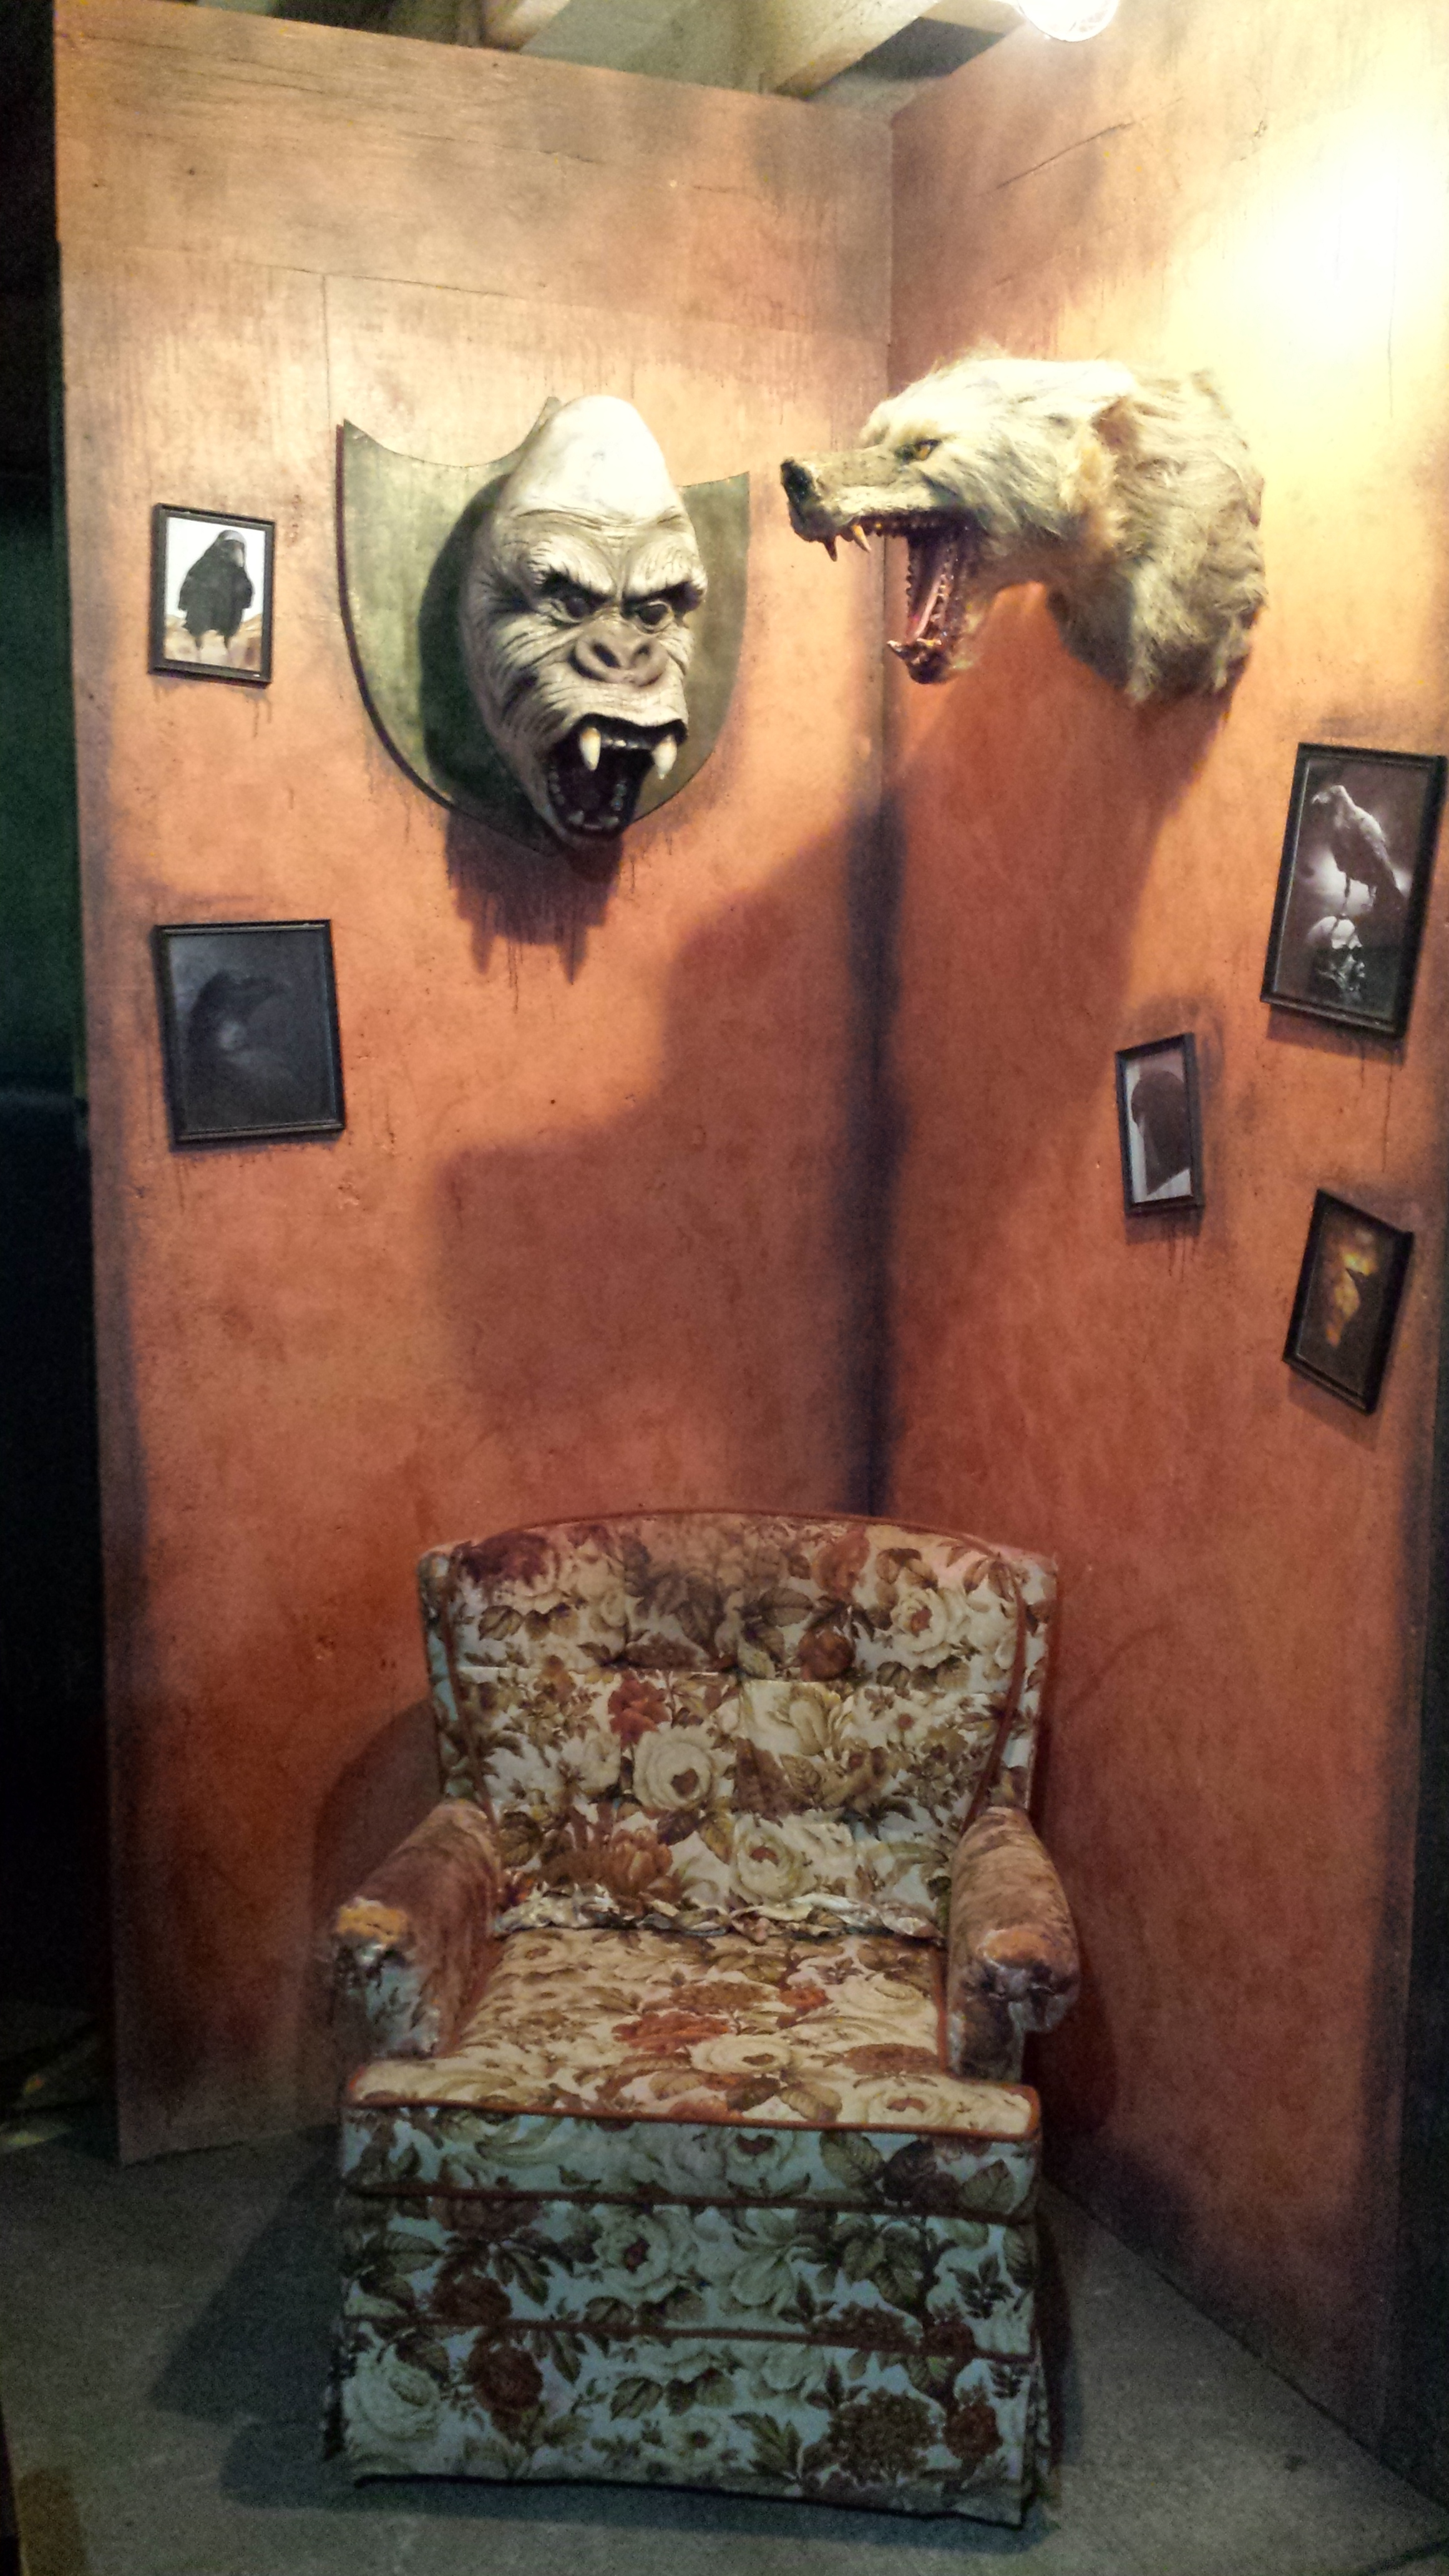 Repaint room, decorate with photographs, distress/age all aspects. (Evil Acres 2015)